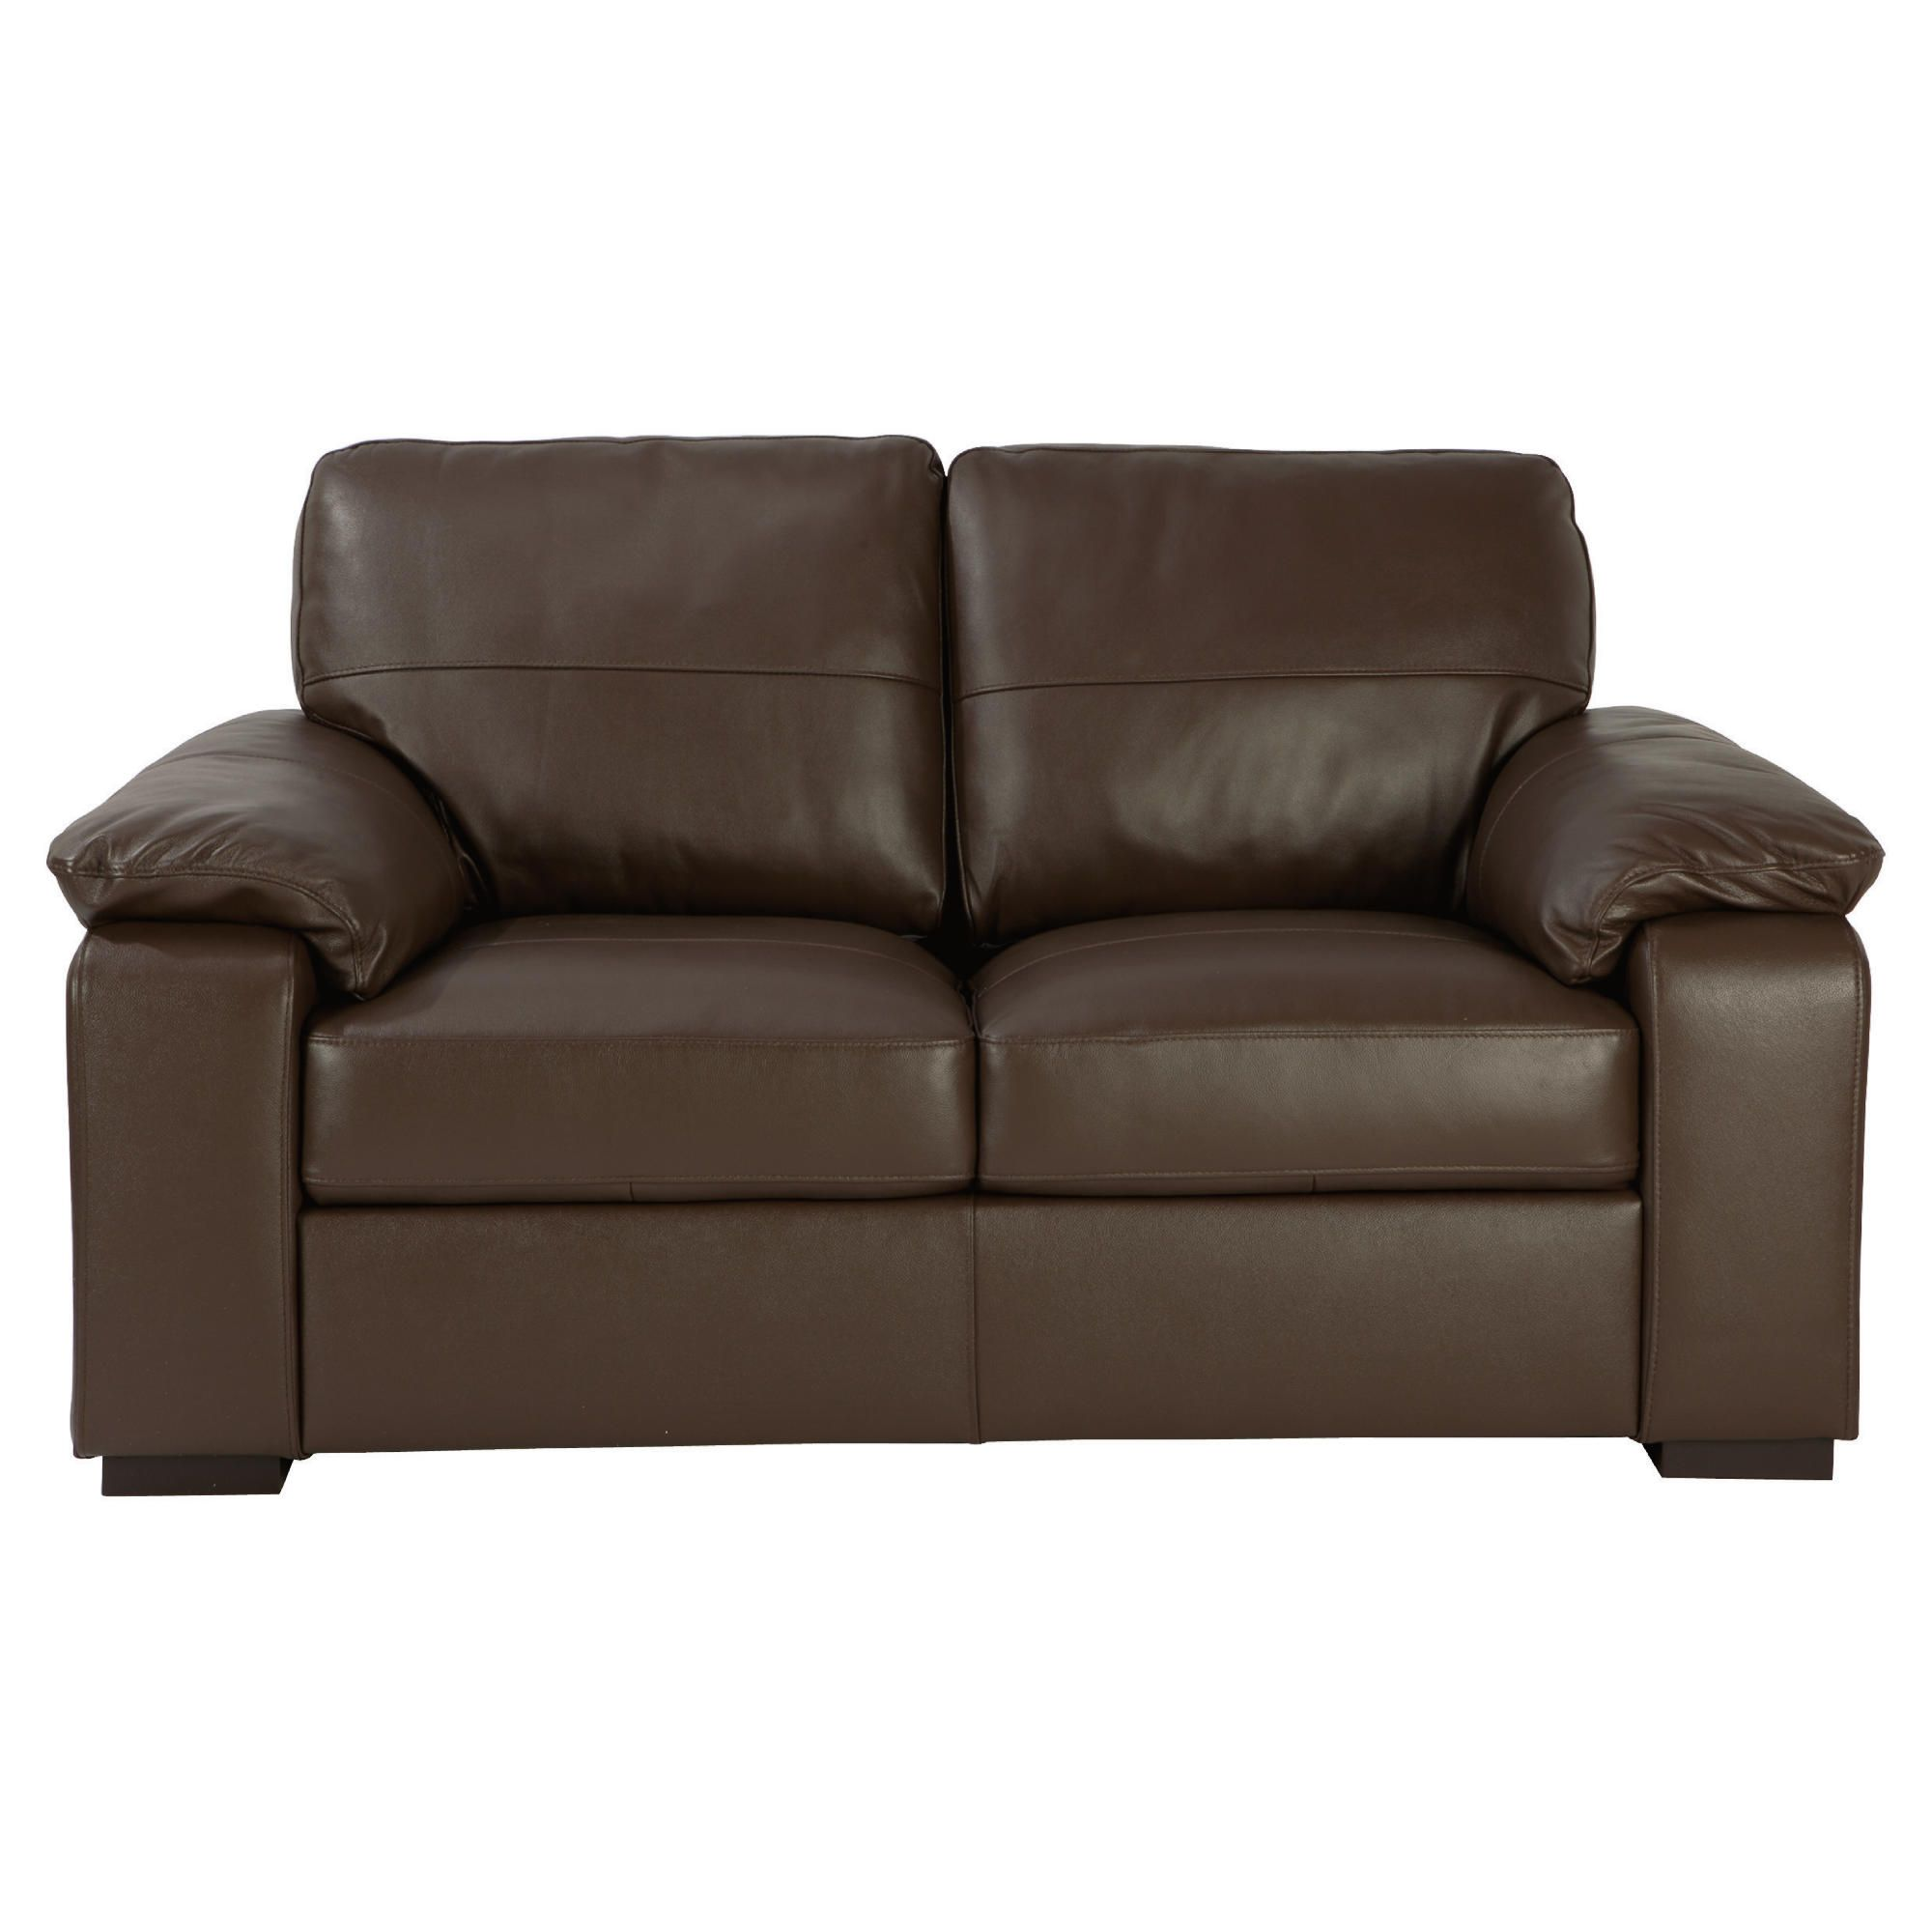 Ashmore Small Leather Sofa, Brown at Tesco Direct